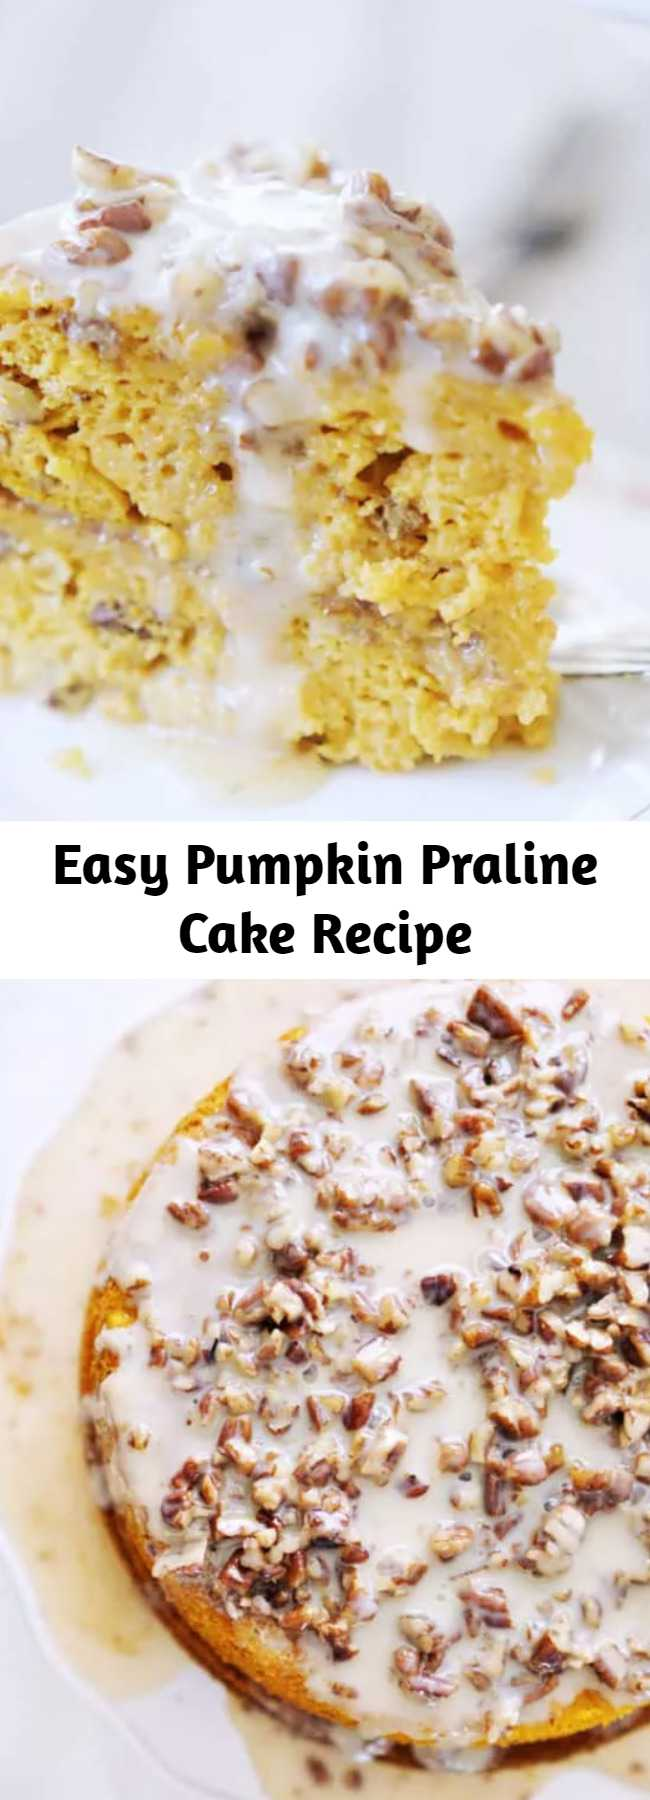 Easy Pumpkin Praline Cake Recipe - The most indulgent icing on the planet poured over a heavenly, moist, decadent and flavor packed Pumpkin Praline Cake. The EASIEST pumpkin cake recipe EVER!